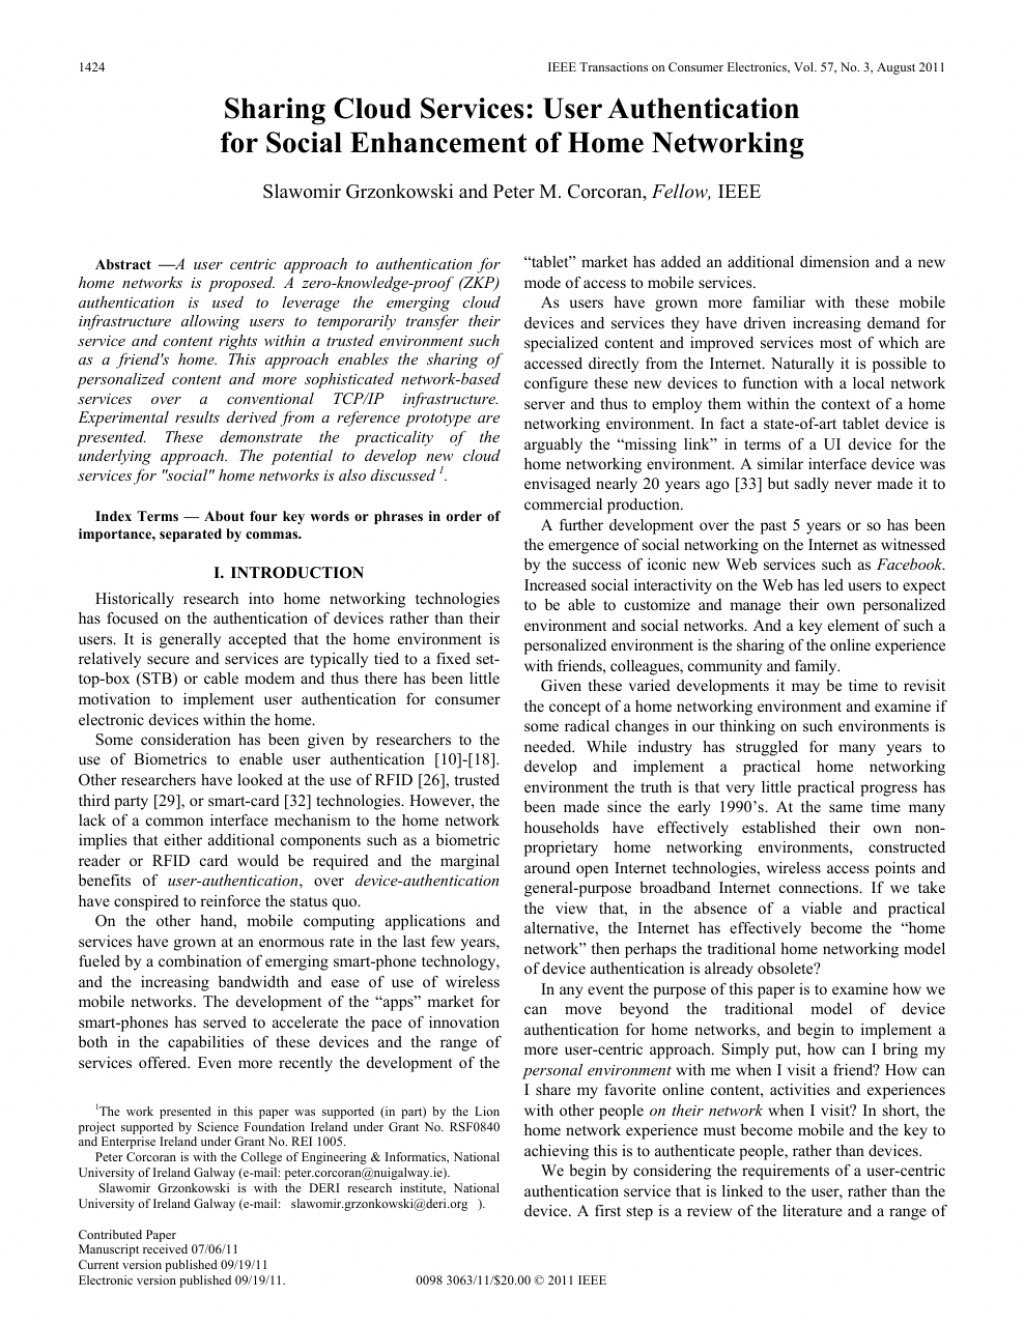 007 Research Paper Ieee Papers In Computer Science Pdf Phenomenal Large